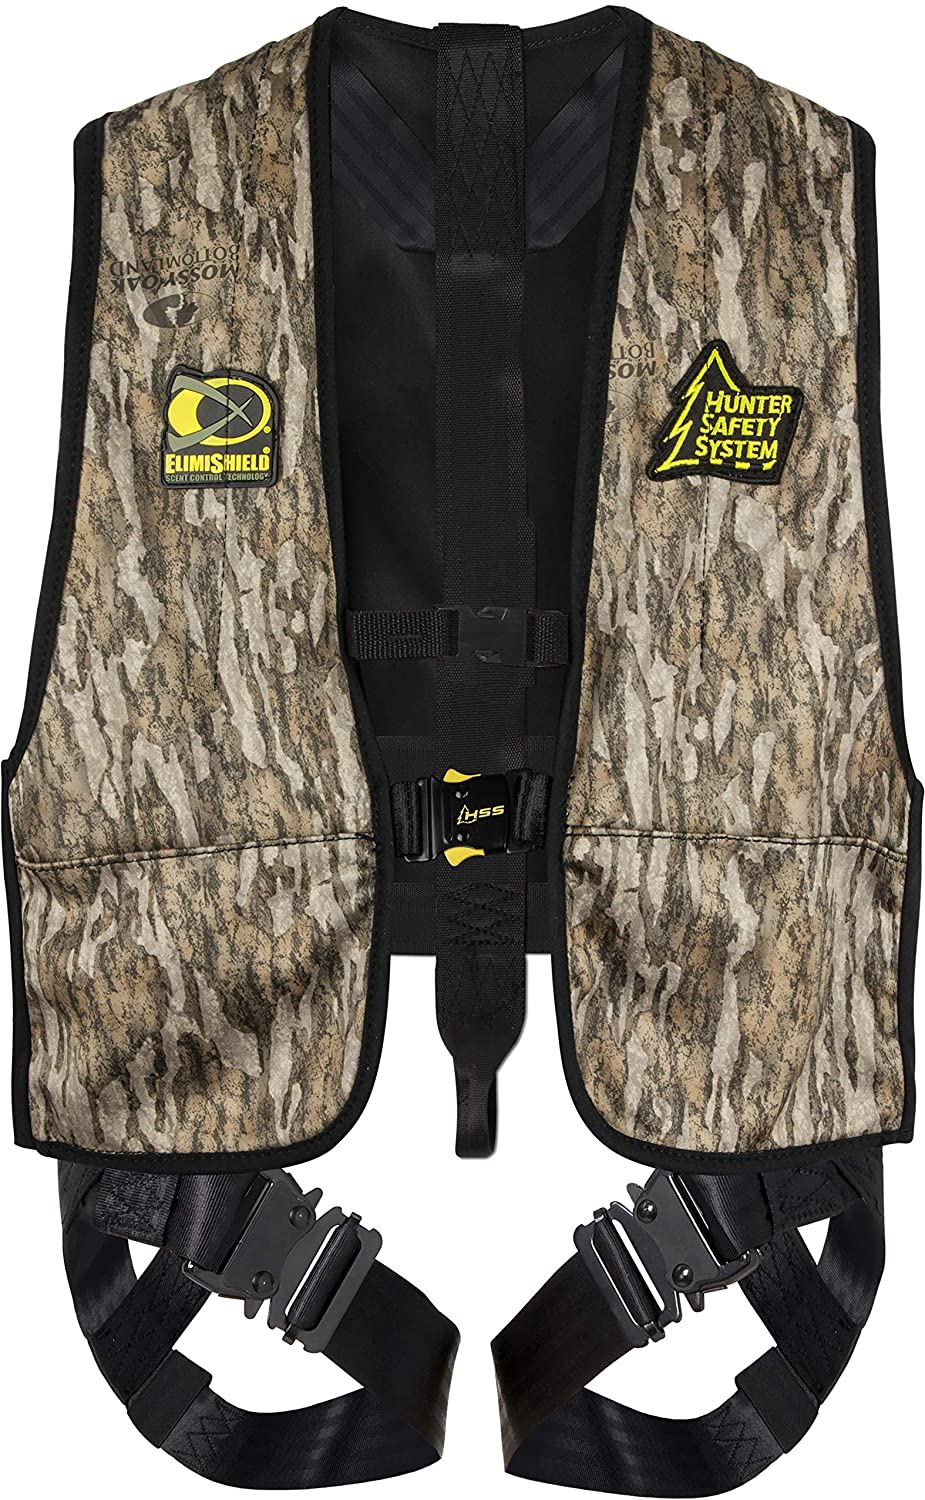 Hunter Safety System HSS Lil' Treestalker Youth Tree-Stand Safety Harness